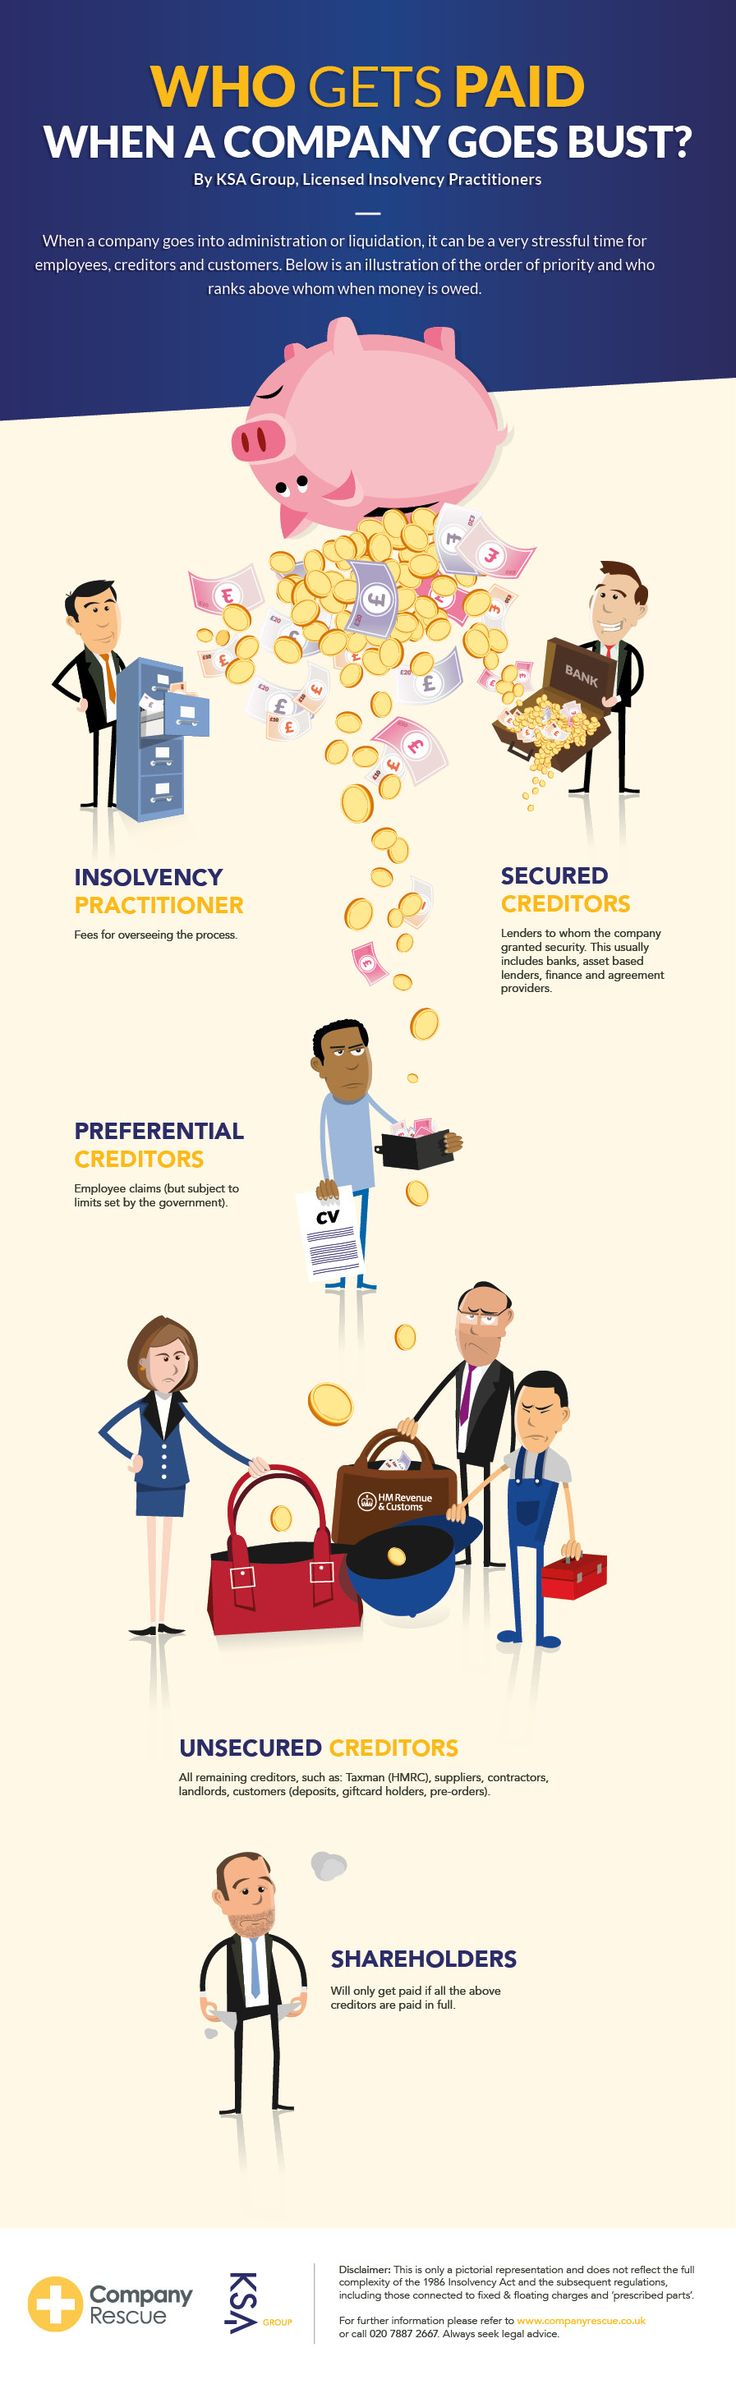 This infographic from Company Rescue shows the priority of payments for people owed money when a business goes bust. It includes the employees, tax authorities, banks, shareholders and insolvency practitioners.